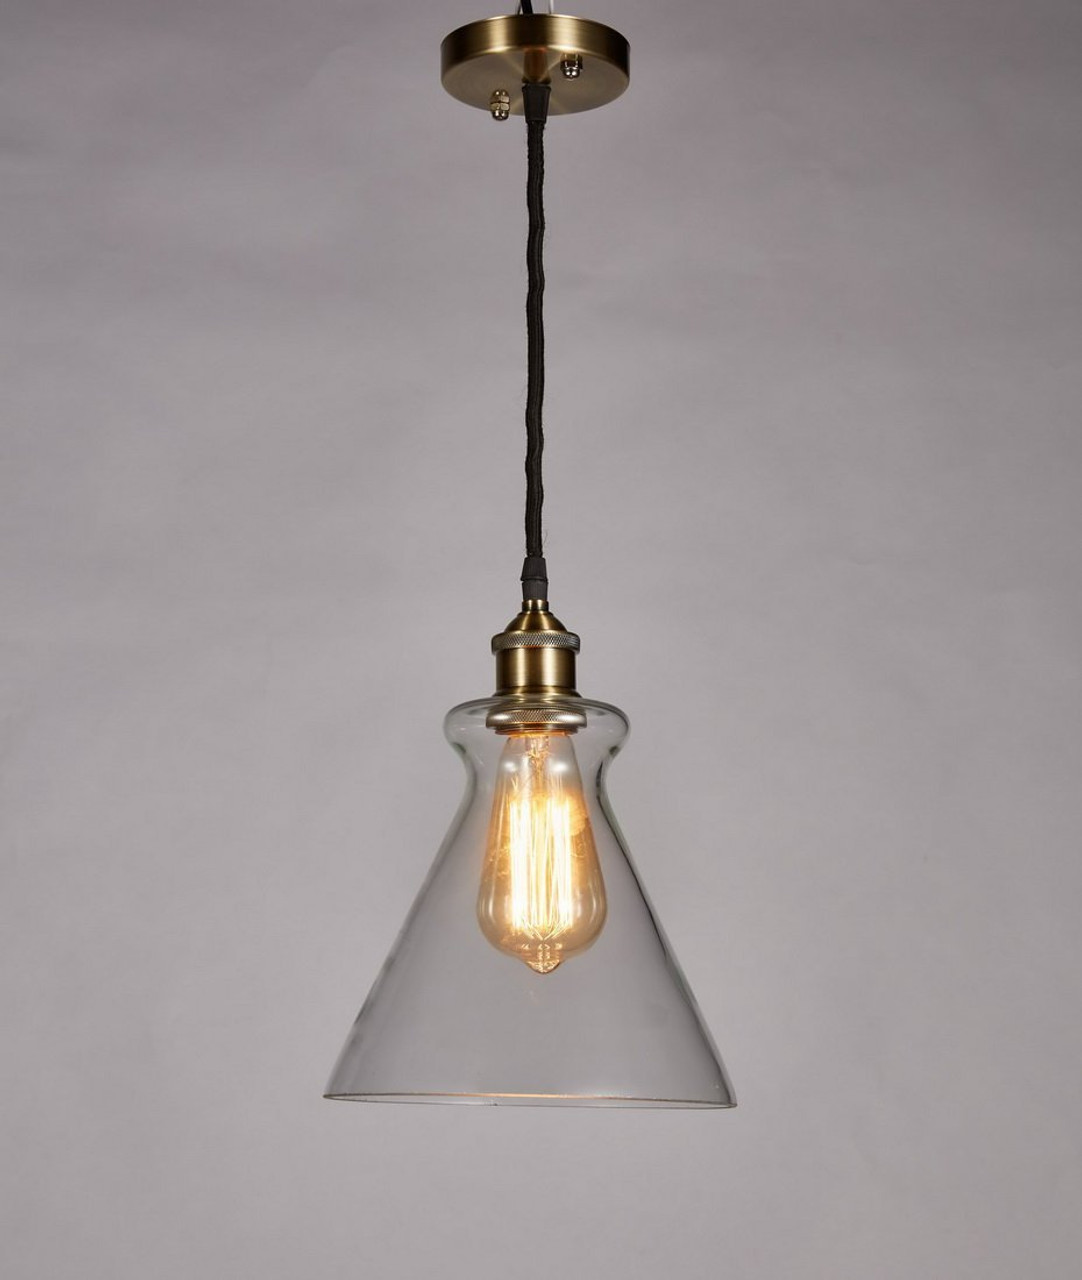 edison pendant design light awesome lights images chandelier stunning pictures vintage with interior contemporary in lamp ceiling ideas on decorating about industrial direct style lighting glass